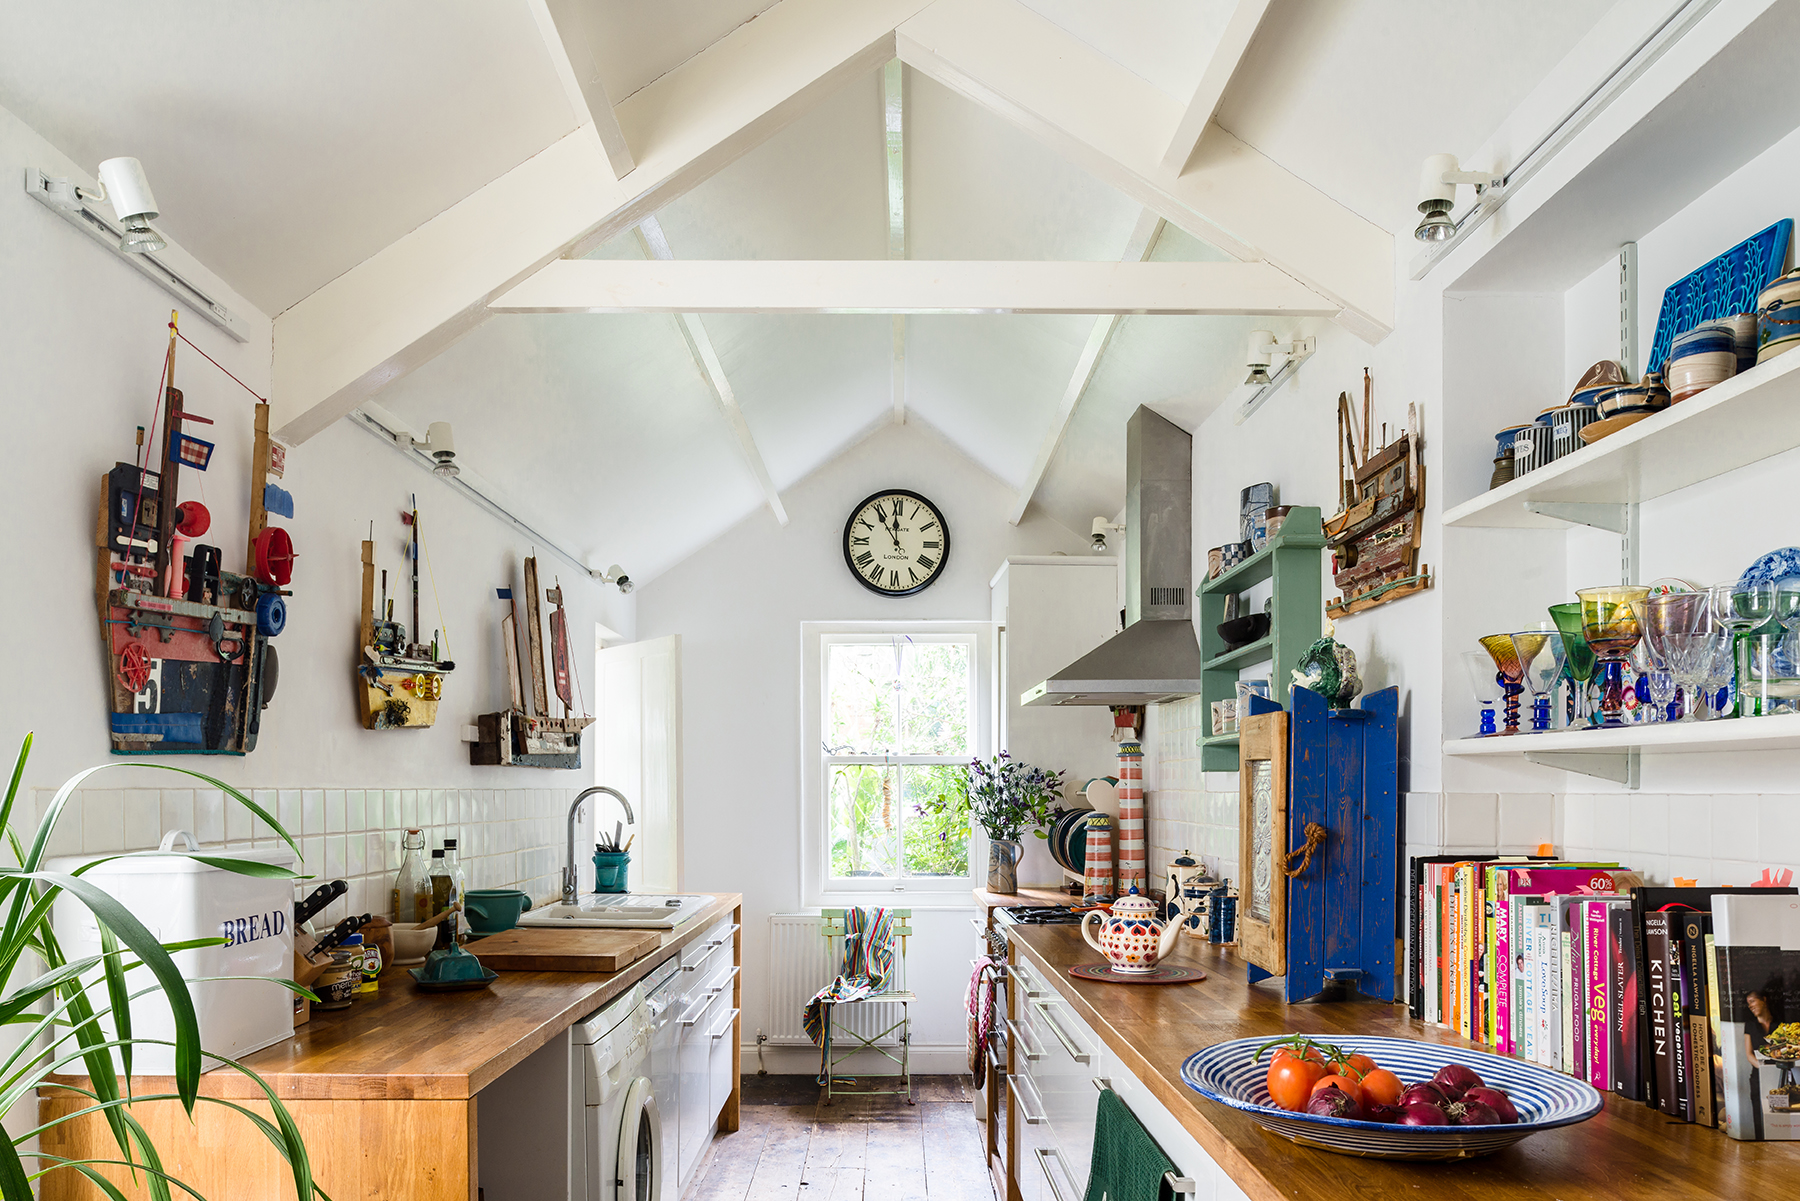 Large kitchen with wall clock